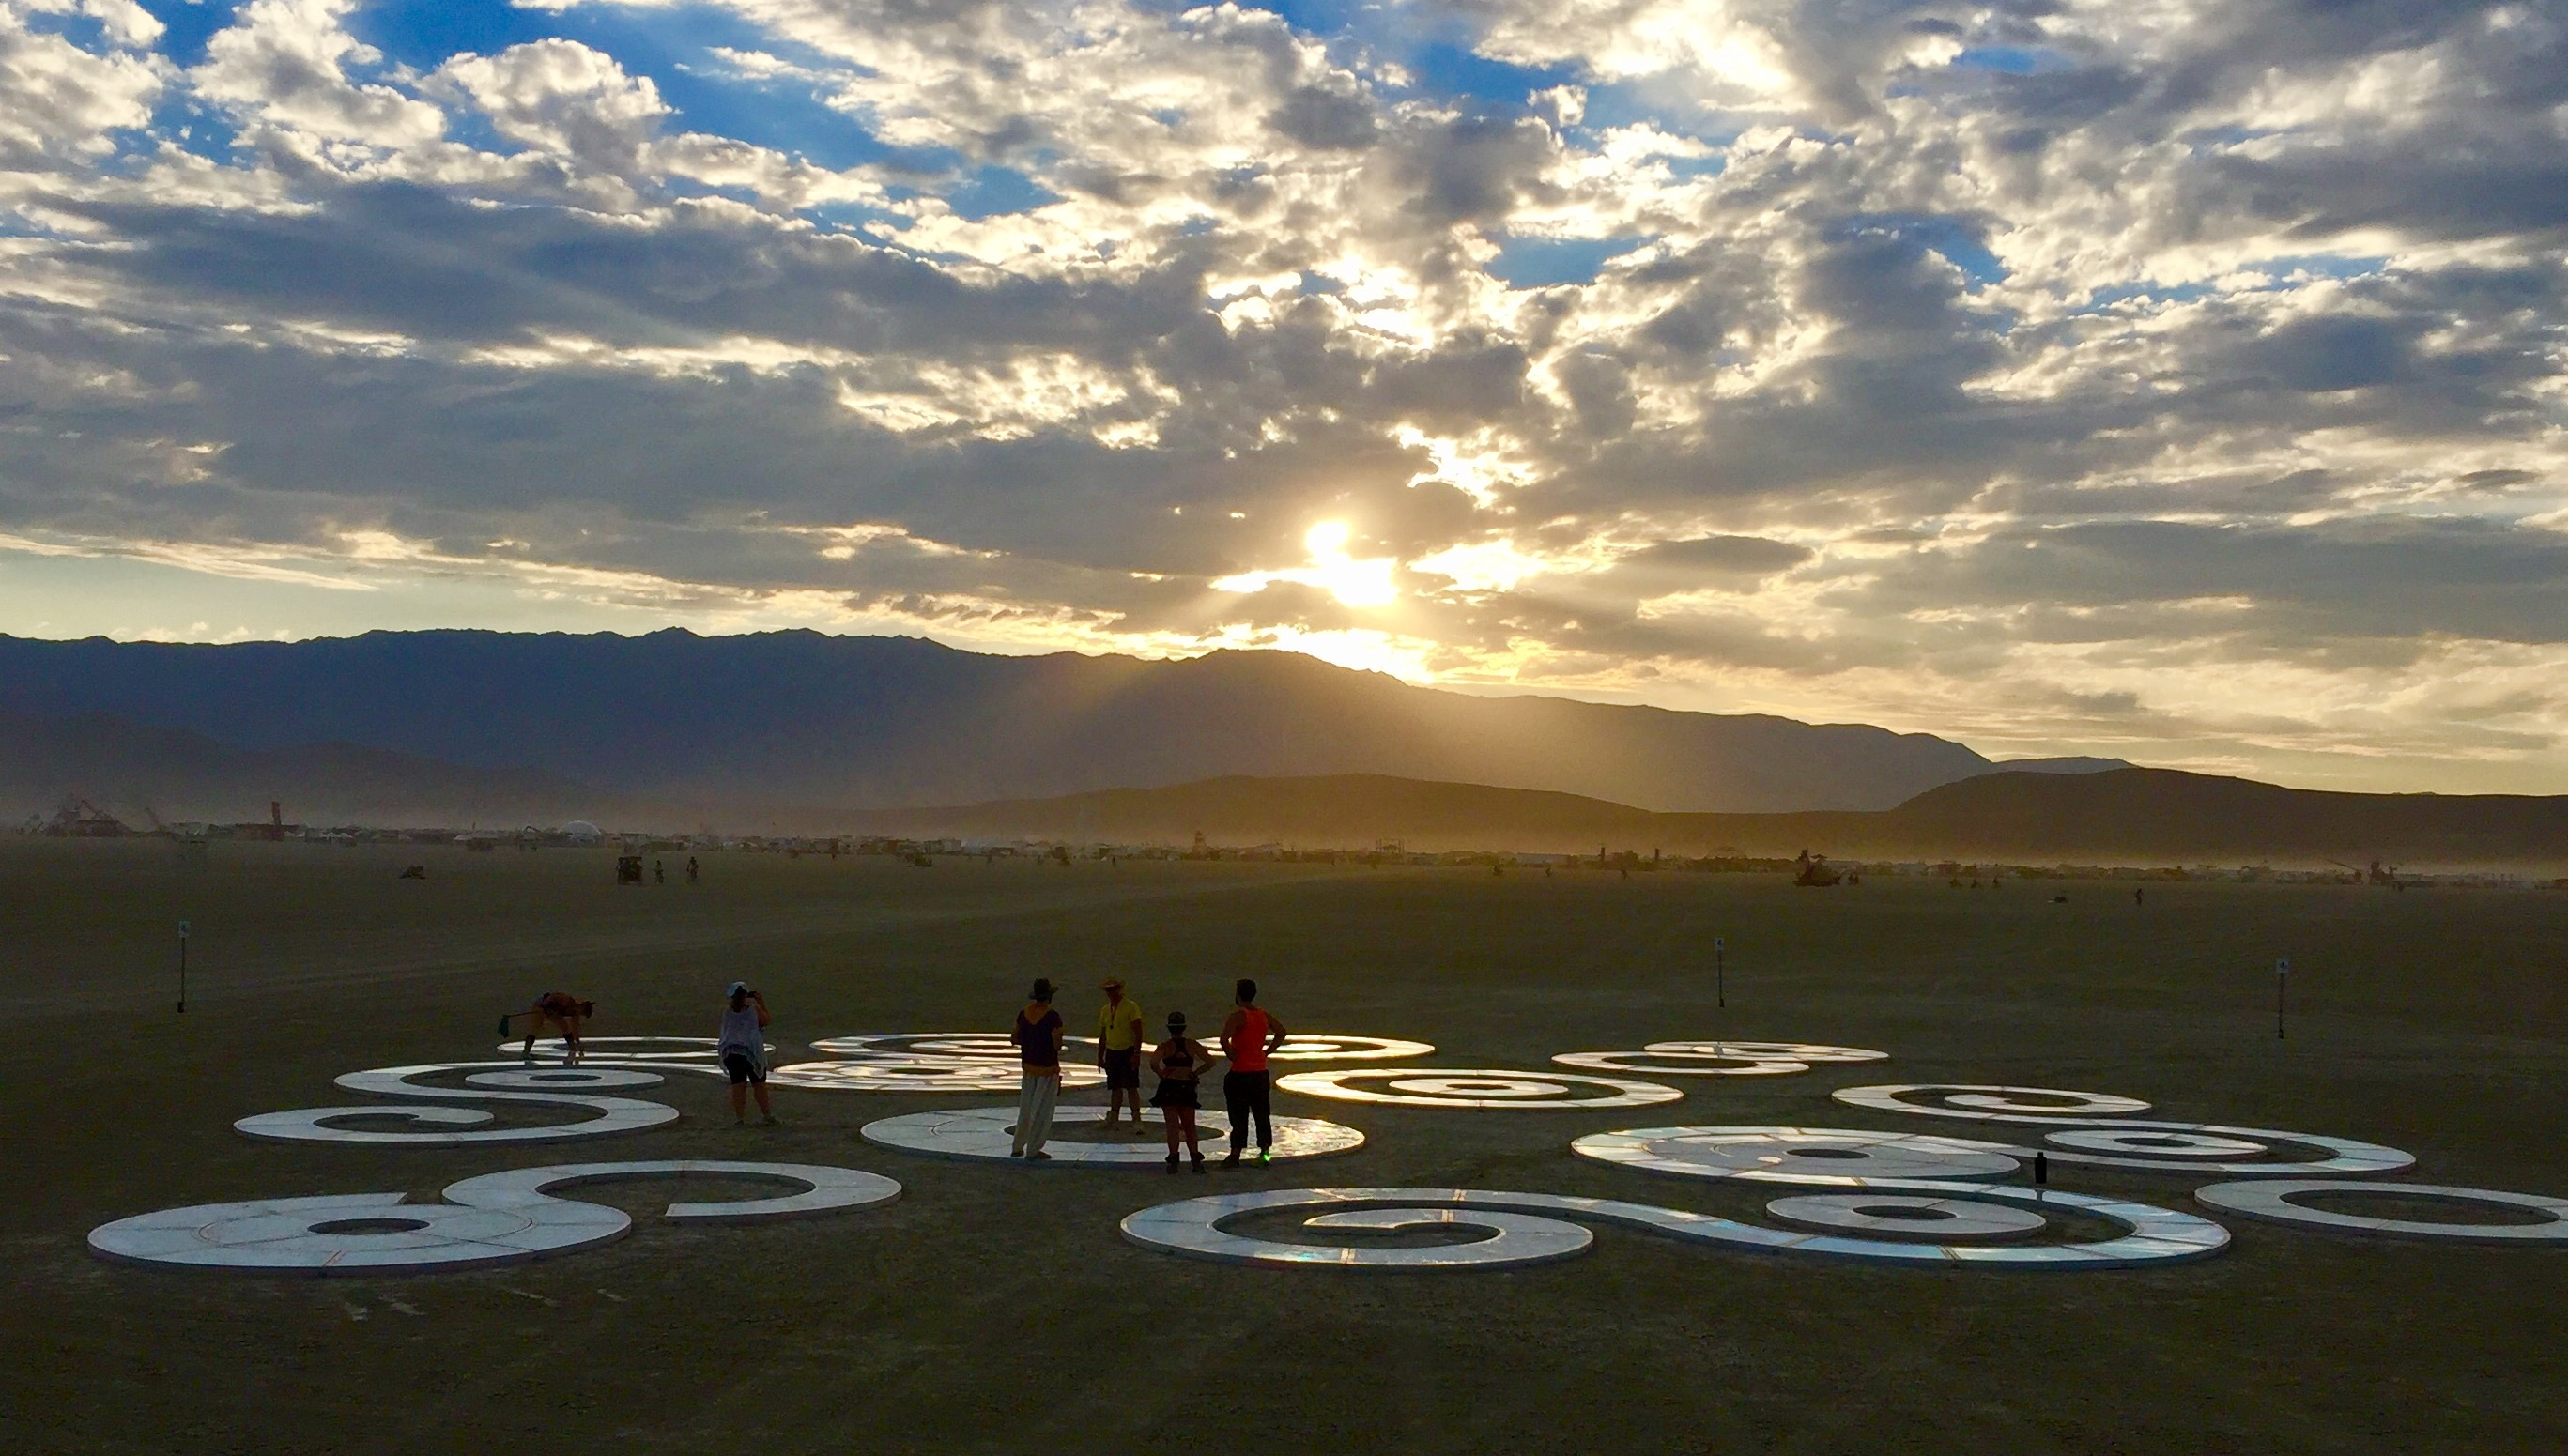 Figures in the distance interact with a spiraling light sculpture in the desert